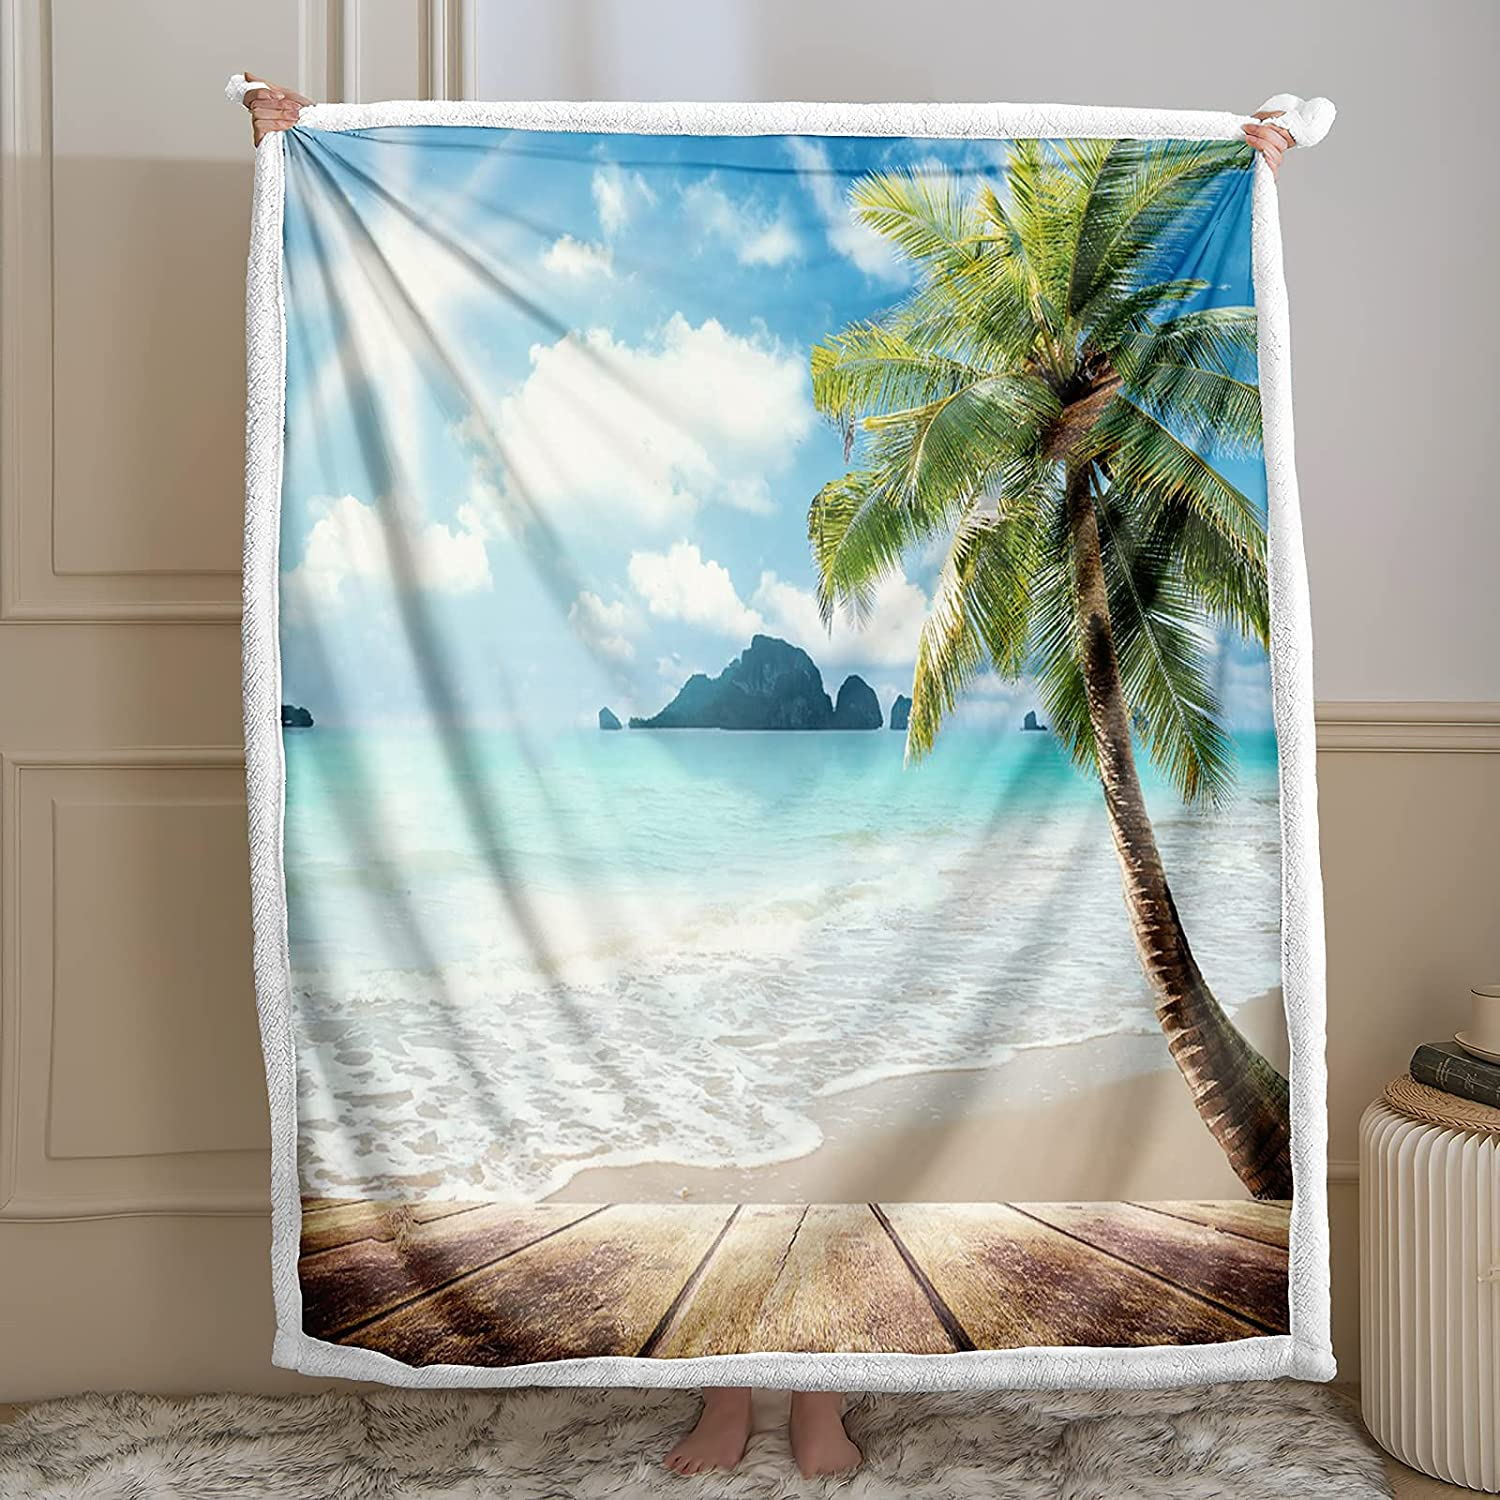 Bedbay Sunny Beach Japan's largest assortment Blanket Time sale Tropical Tree Palm Throw Sherpa Blank